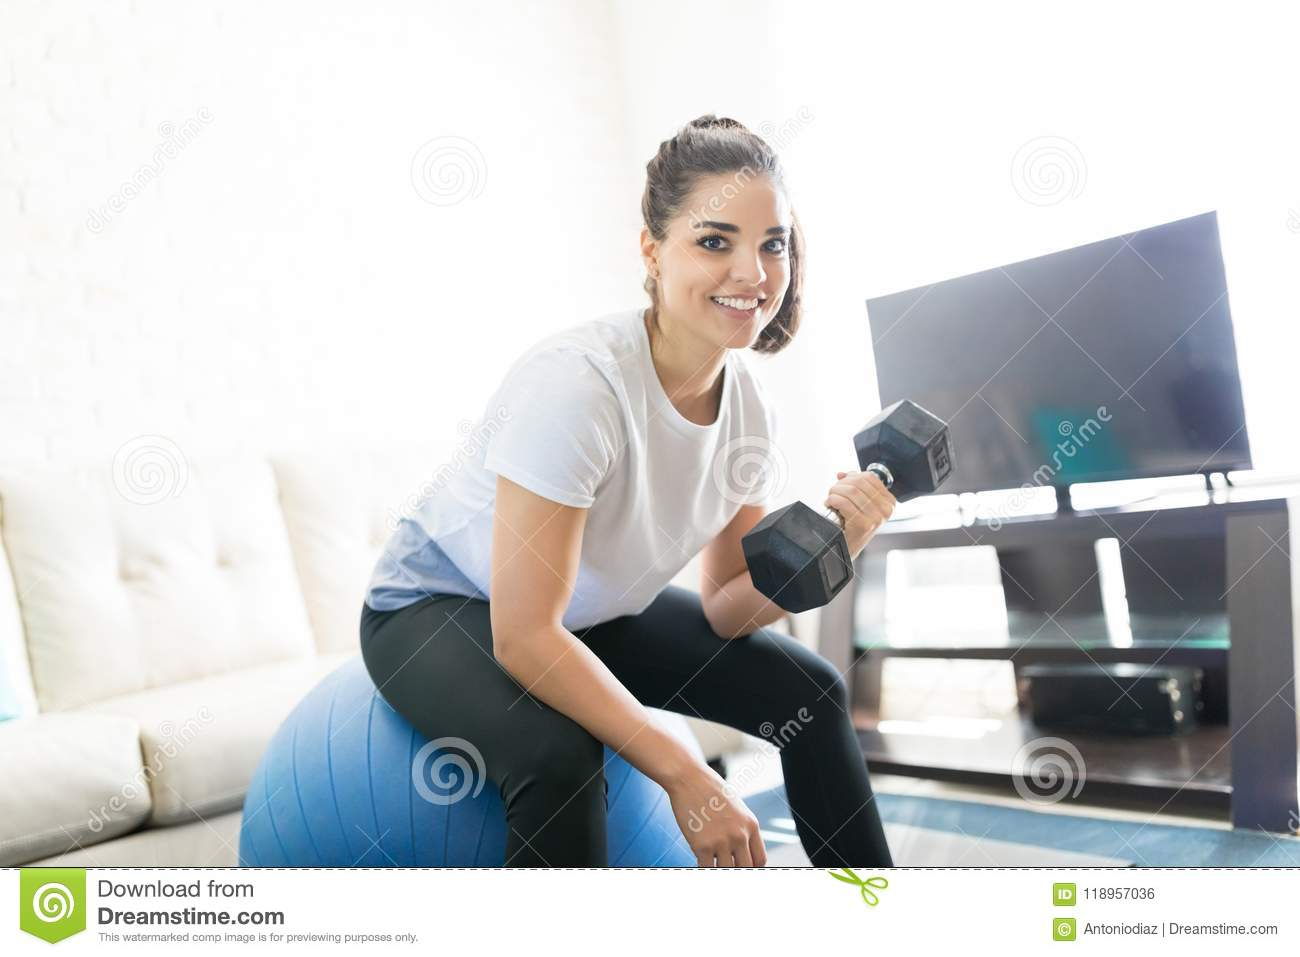 Dumbbell Workout On Swiss Ball Stock Photo - Image of lifting